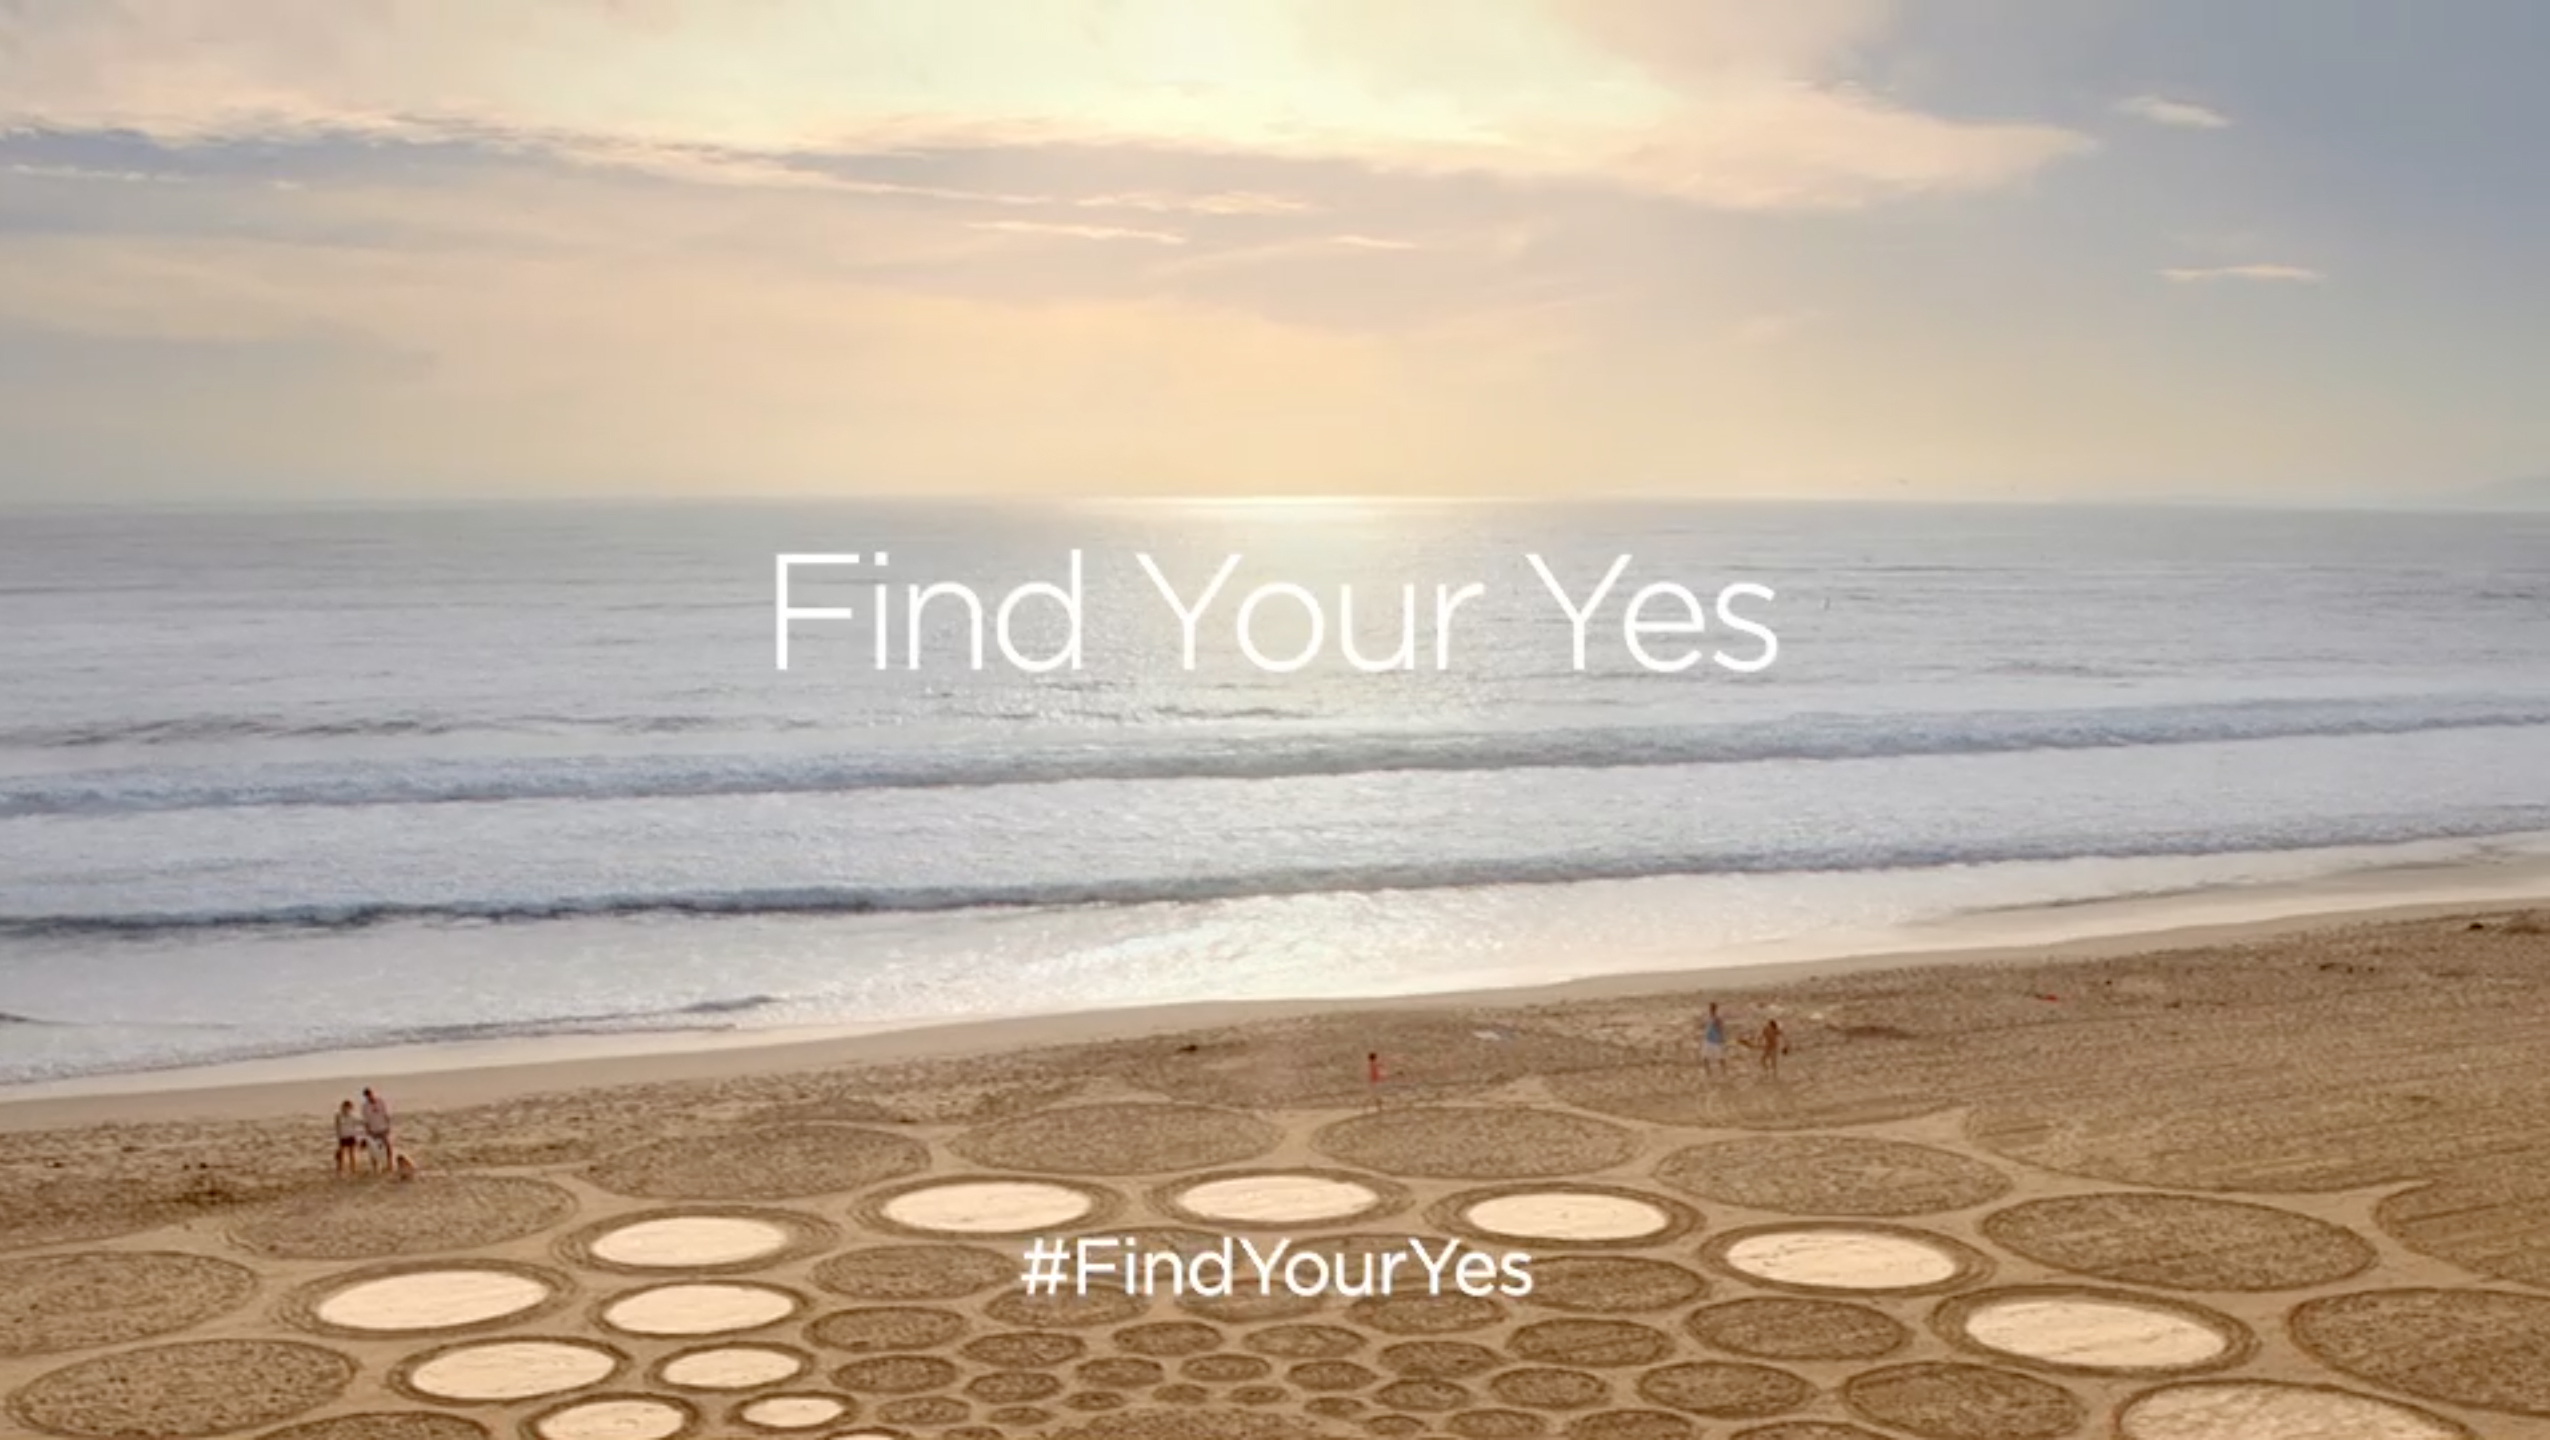 """Kohl's embraces the power of """"Yes"""" in new brand campaign (Photo: Business Wire)"""